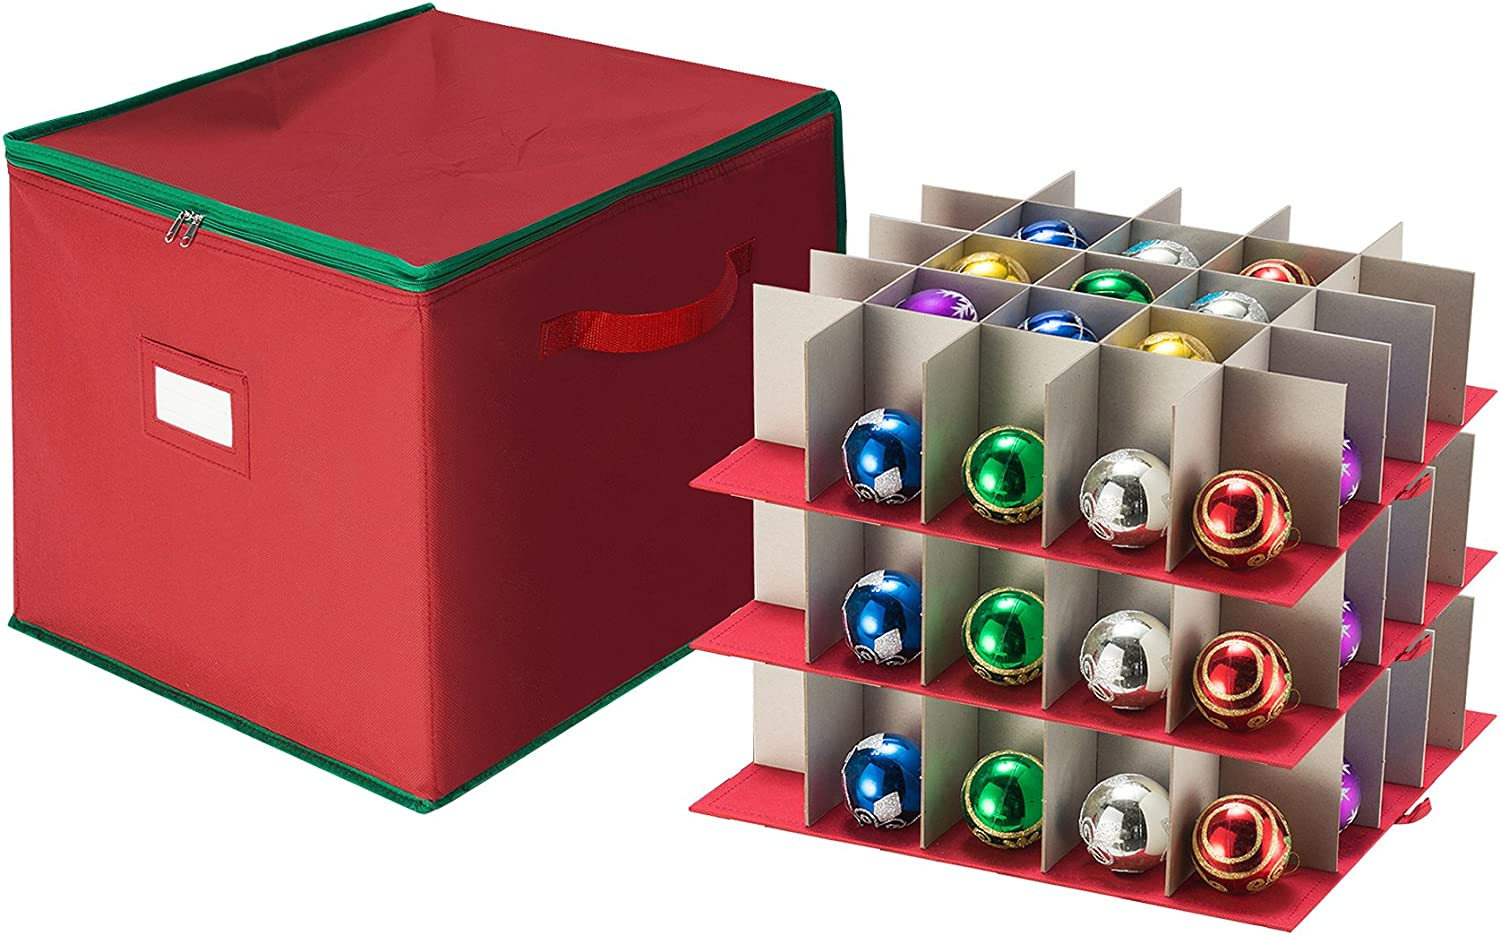 Tiny Tim Totes 83-DT5535 Red Holiday Ornament Storage Chest Holds 75 Bulbs w/Dividers, Case